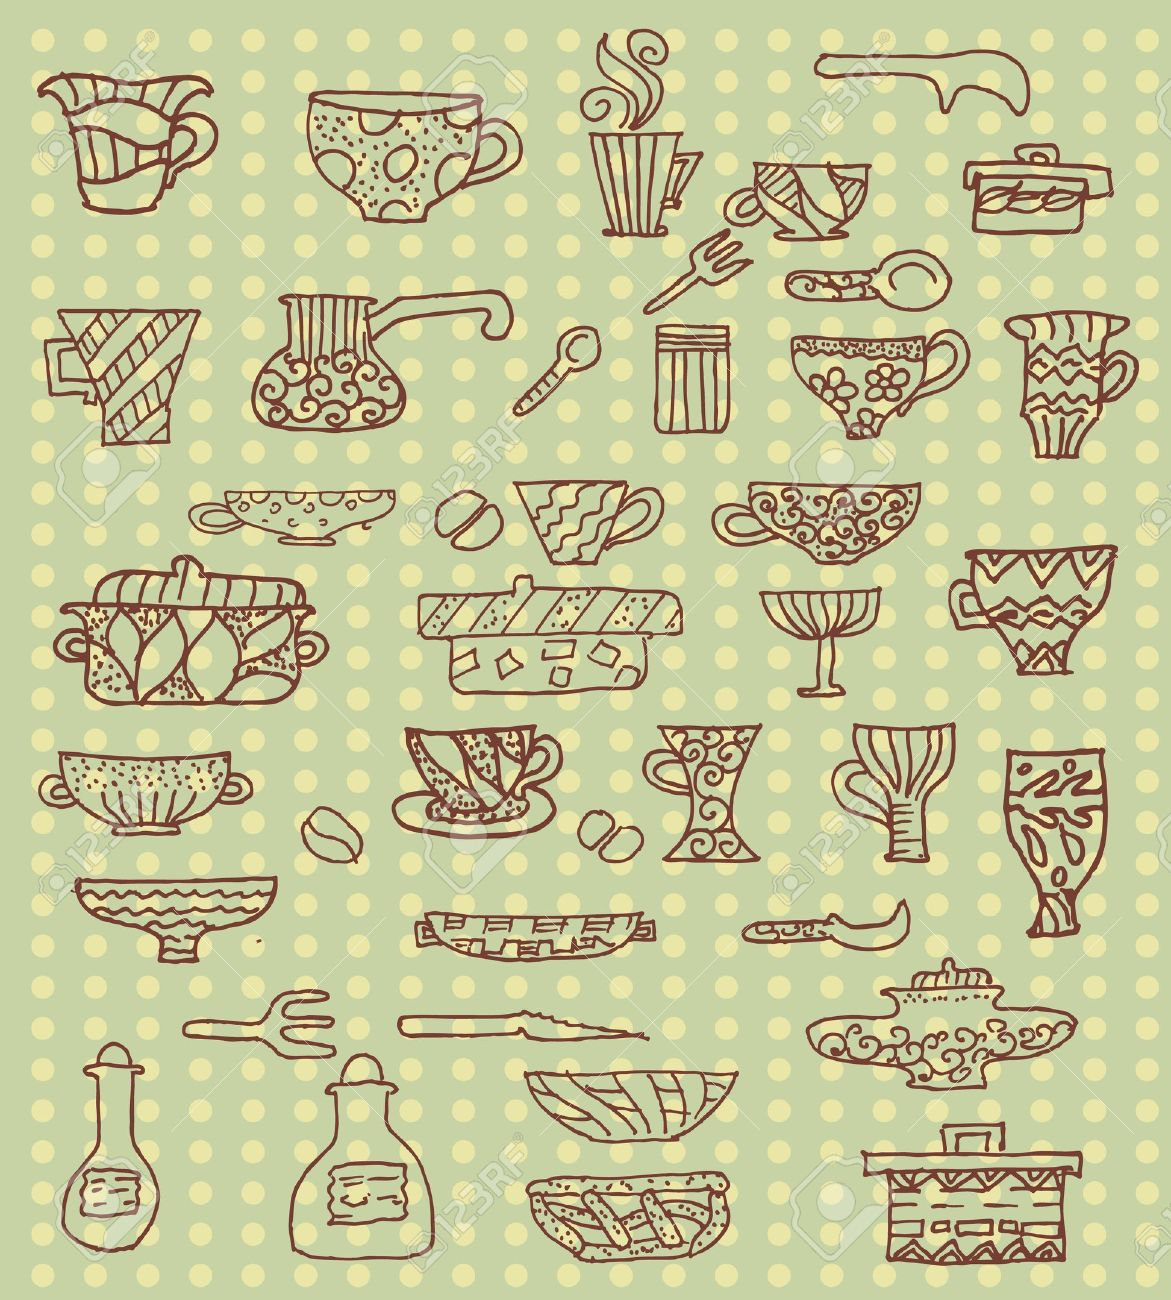 Kitchen Utensils Background kitchen utensils background royalty free cliparts, vectors, and